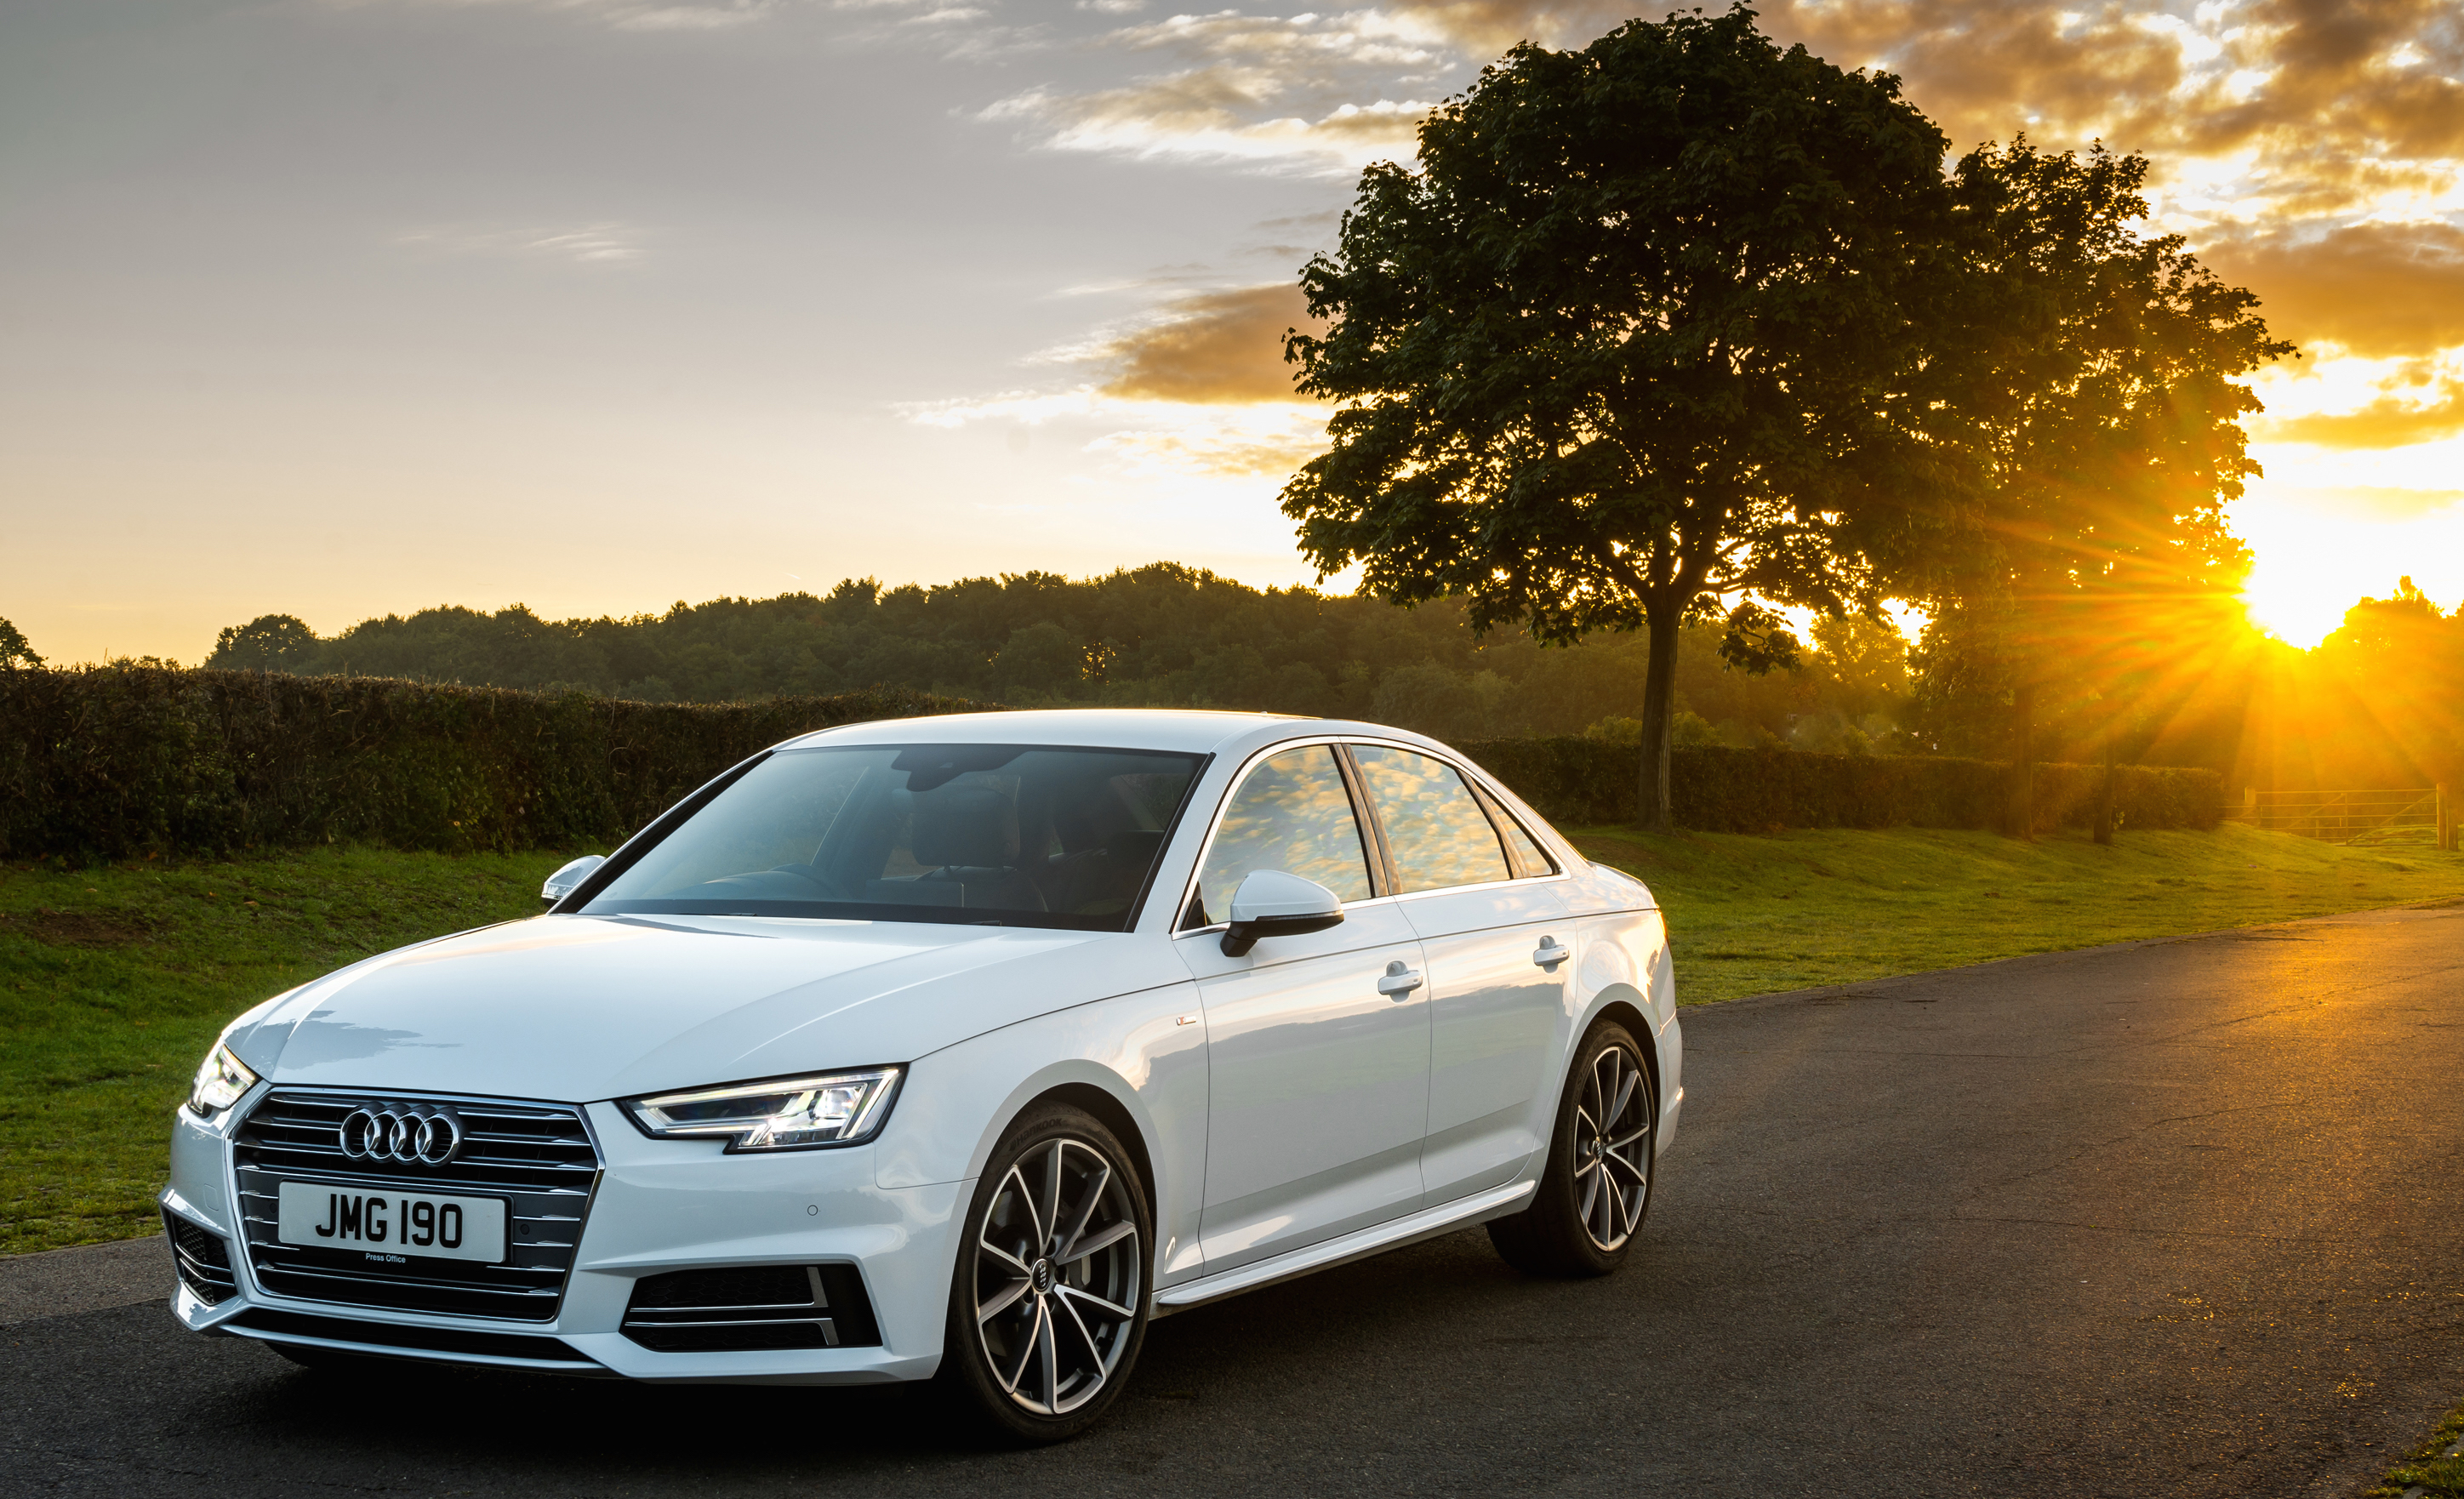 Review: Audi A4 Saloon 2.0 TDI S Line 190 PS S Tronic £33,345.00   Tech  Digest